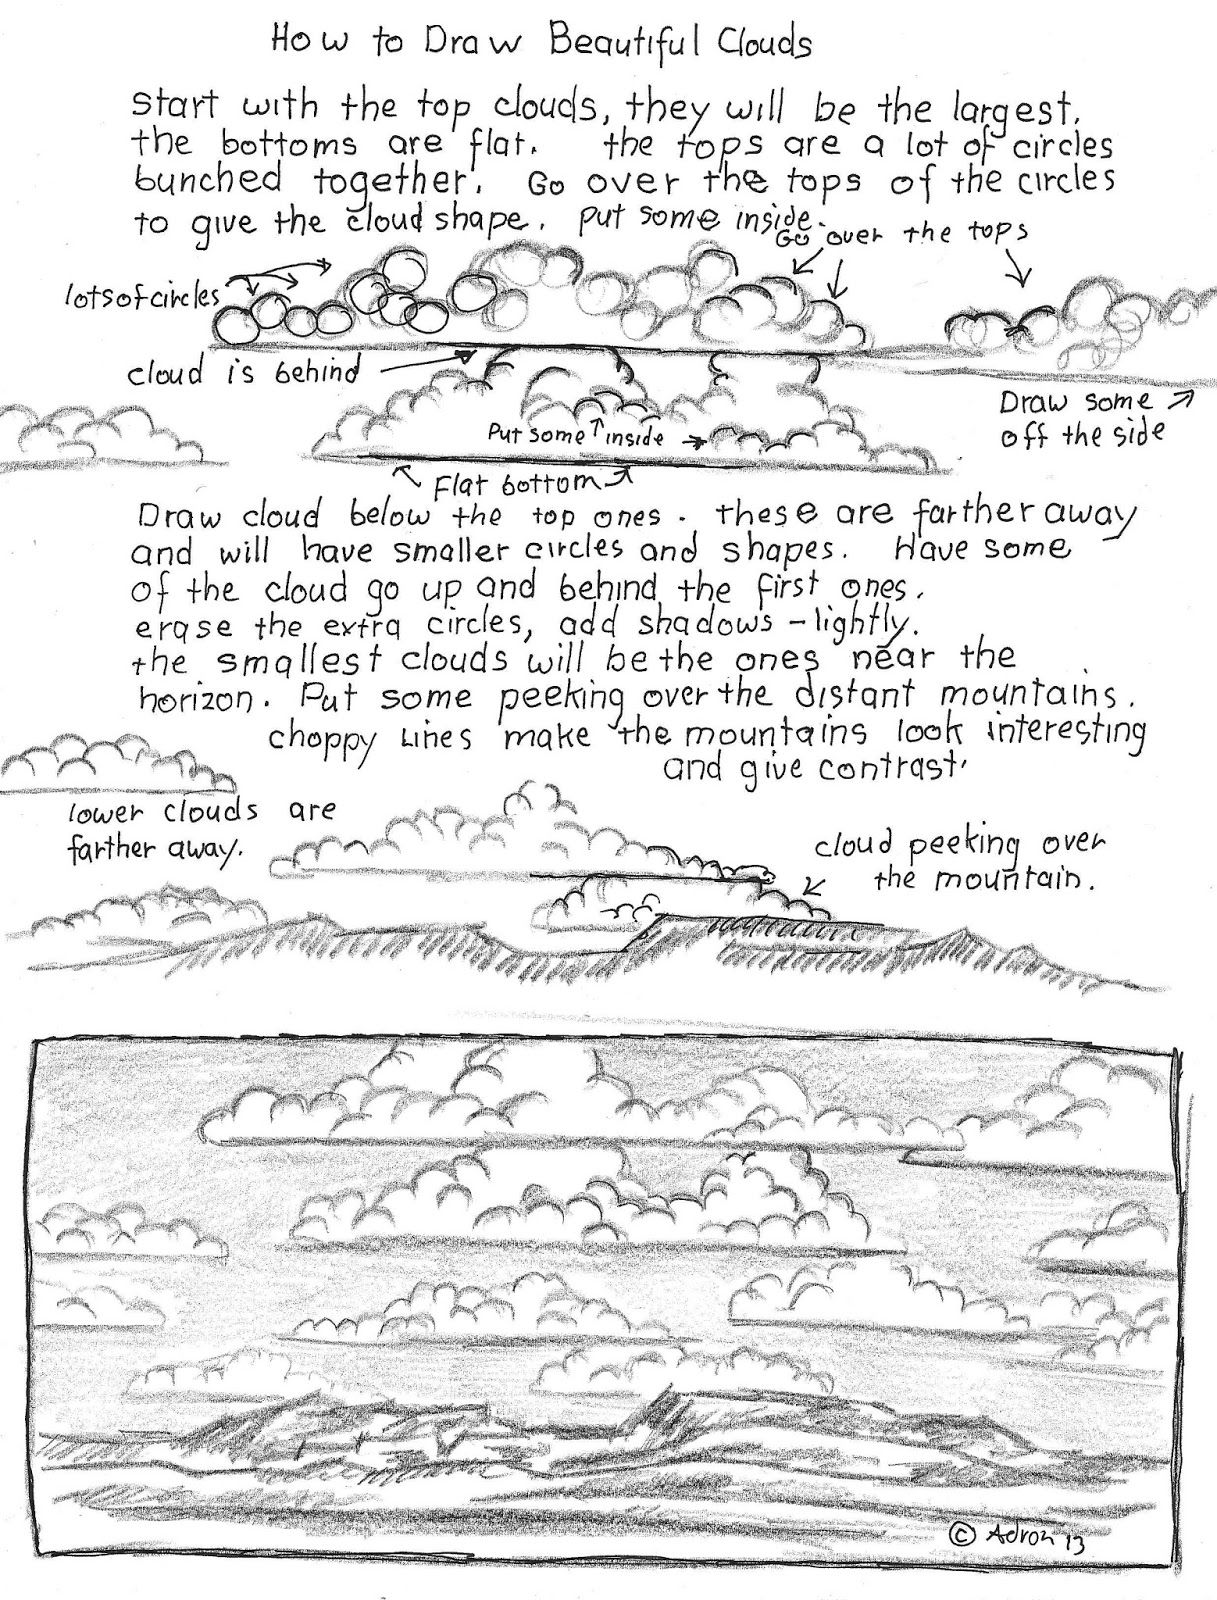 How To Draw Beautiful Clouds Worksheet